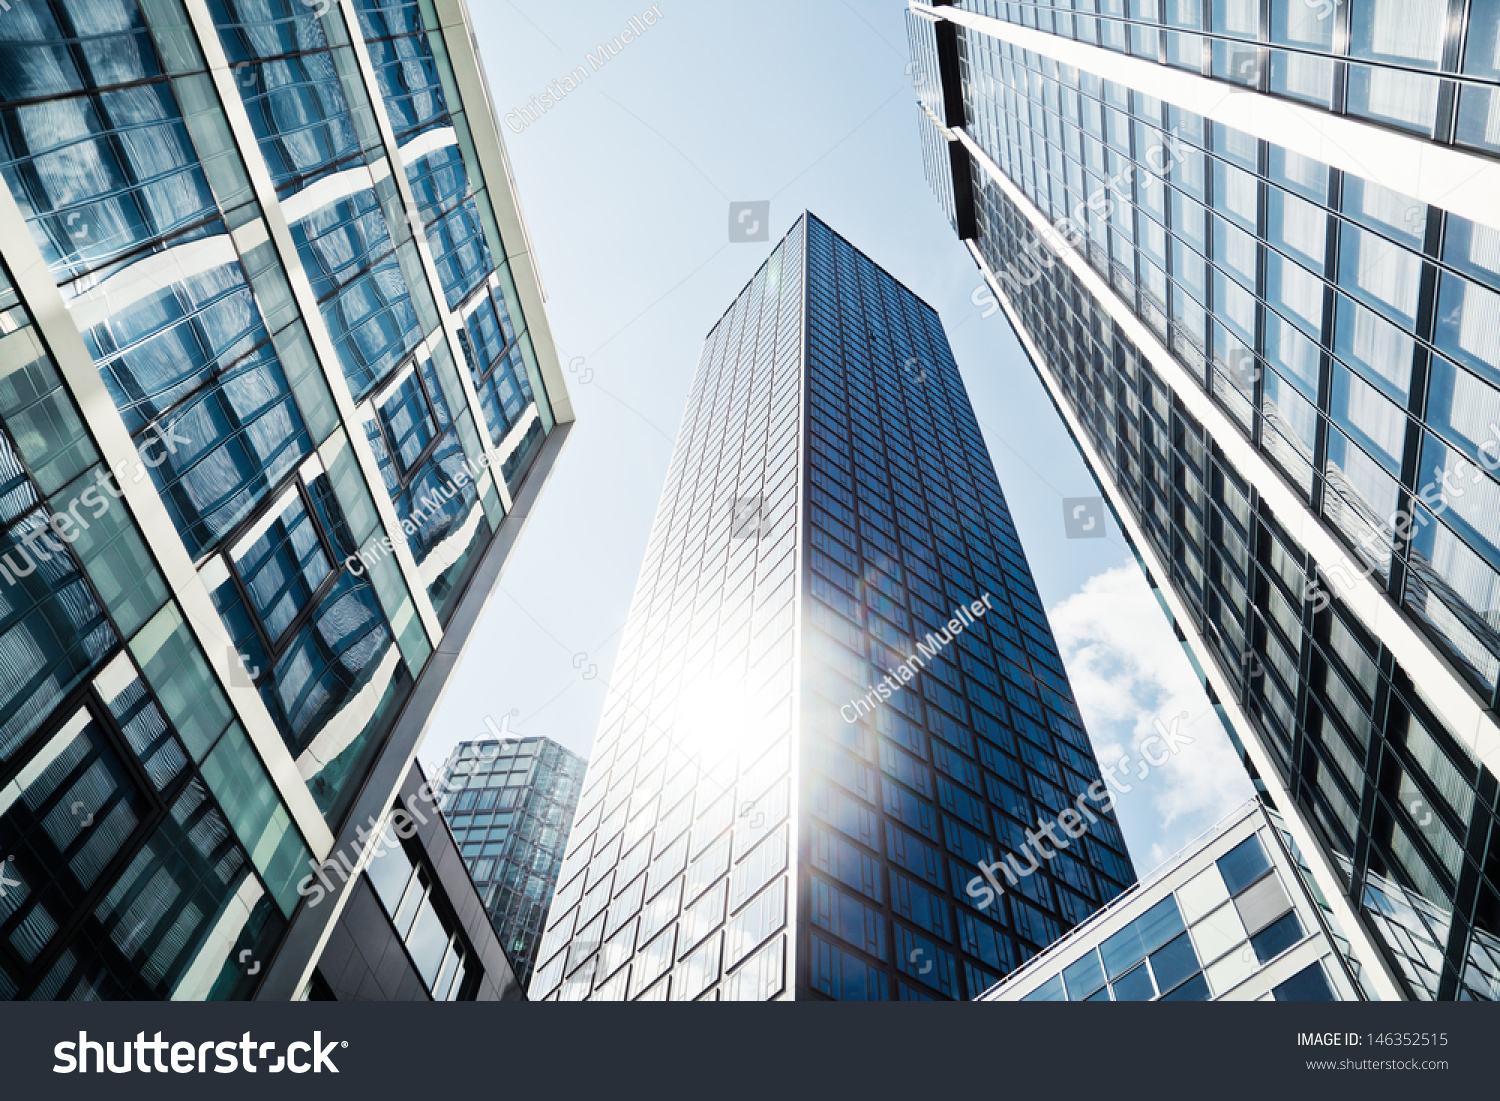 Low Angle View Of Modern Office Buildings Photo: Modern Office Buildings Low Angle View Stock Photo